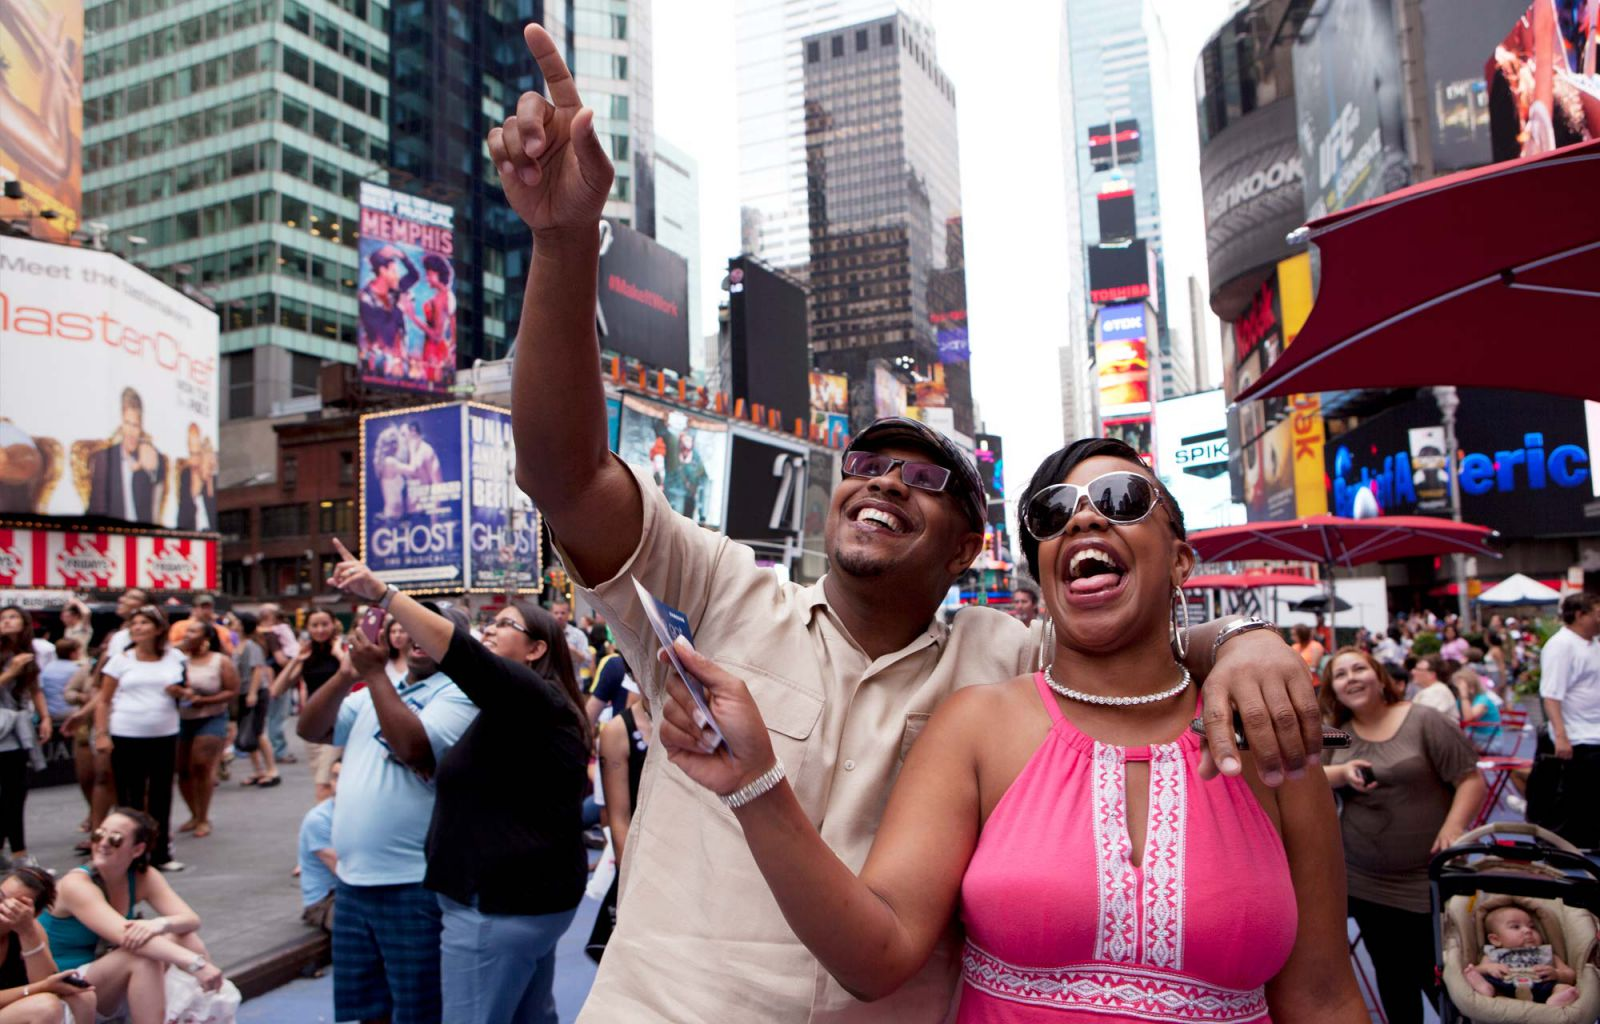 Participants in Times Square reacting to their video on the billboard